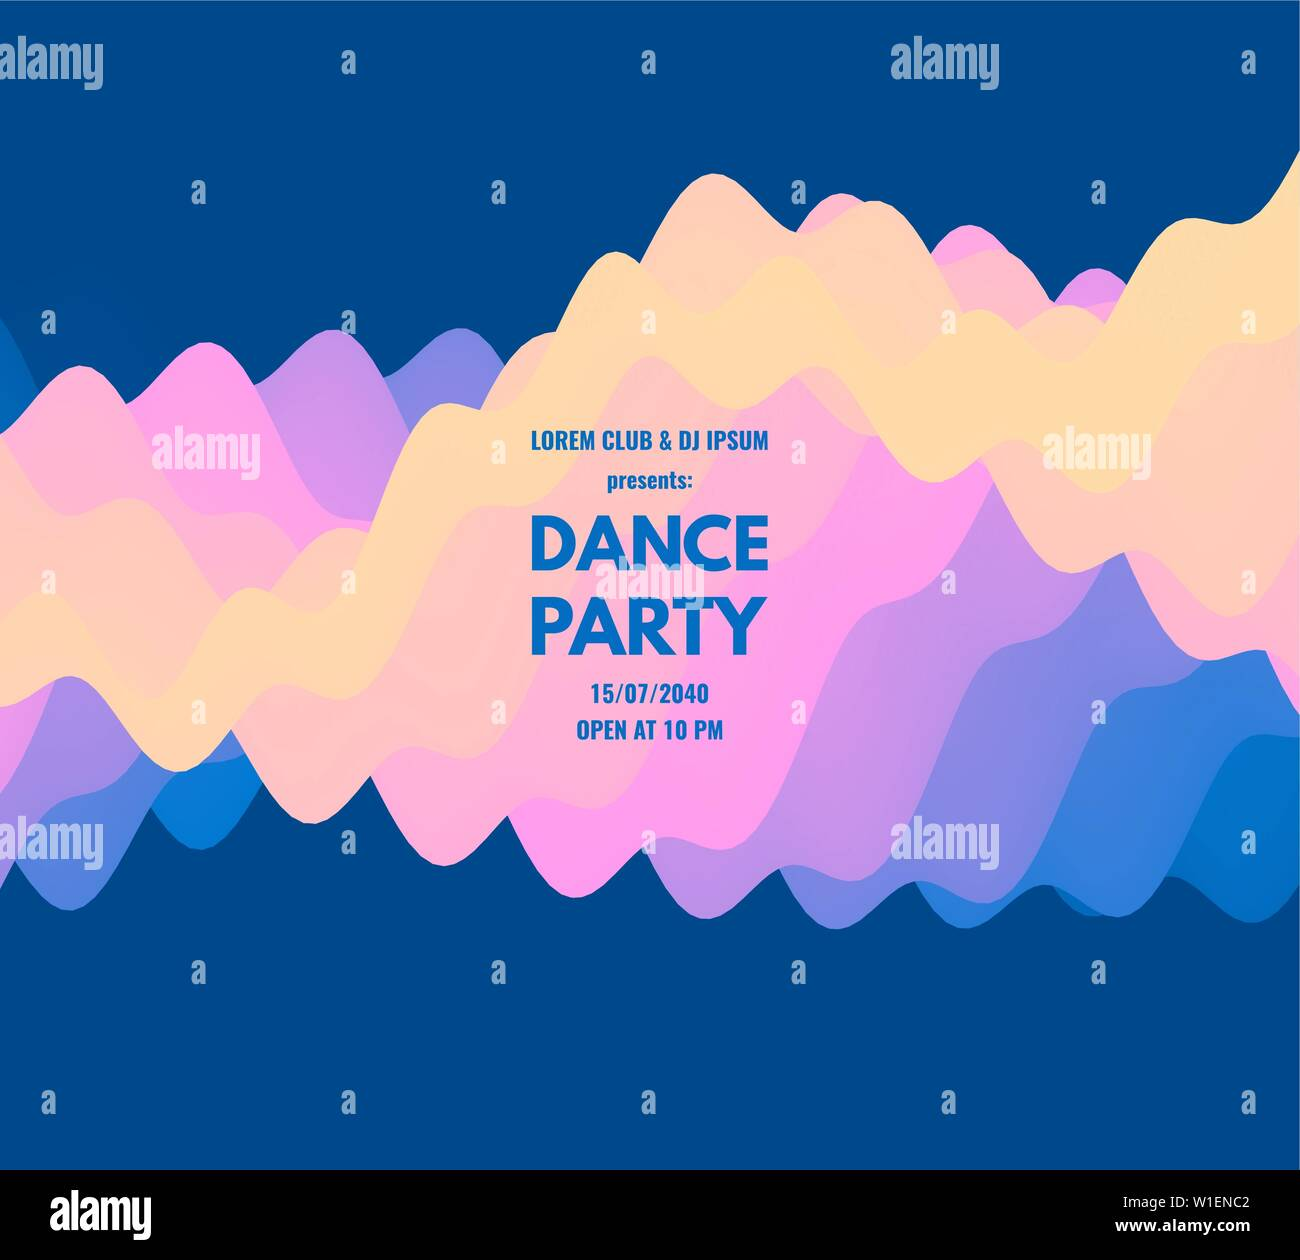 Dance Party Invitation With Date And Time Details Music Event Flyer Or Banner 3d Wavy Background With Dynamic Effect Vector Illustration Stock Vector Image Art Alamy